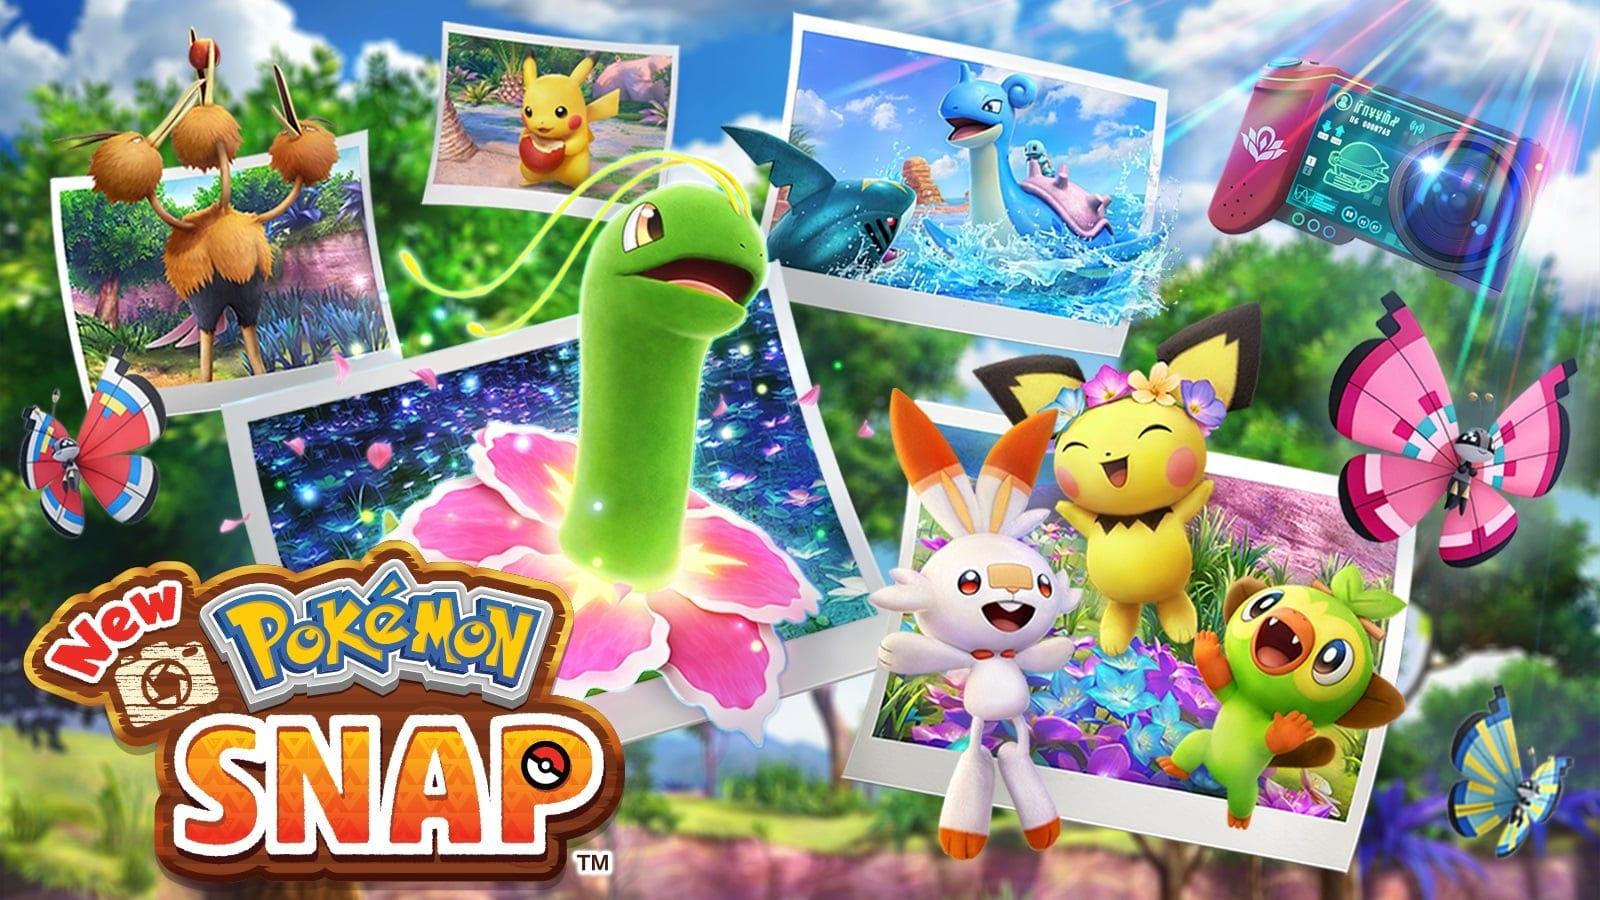 New Pokémon Snap Set For April Release, New Trailer Confirms